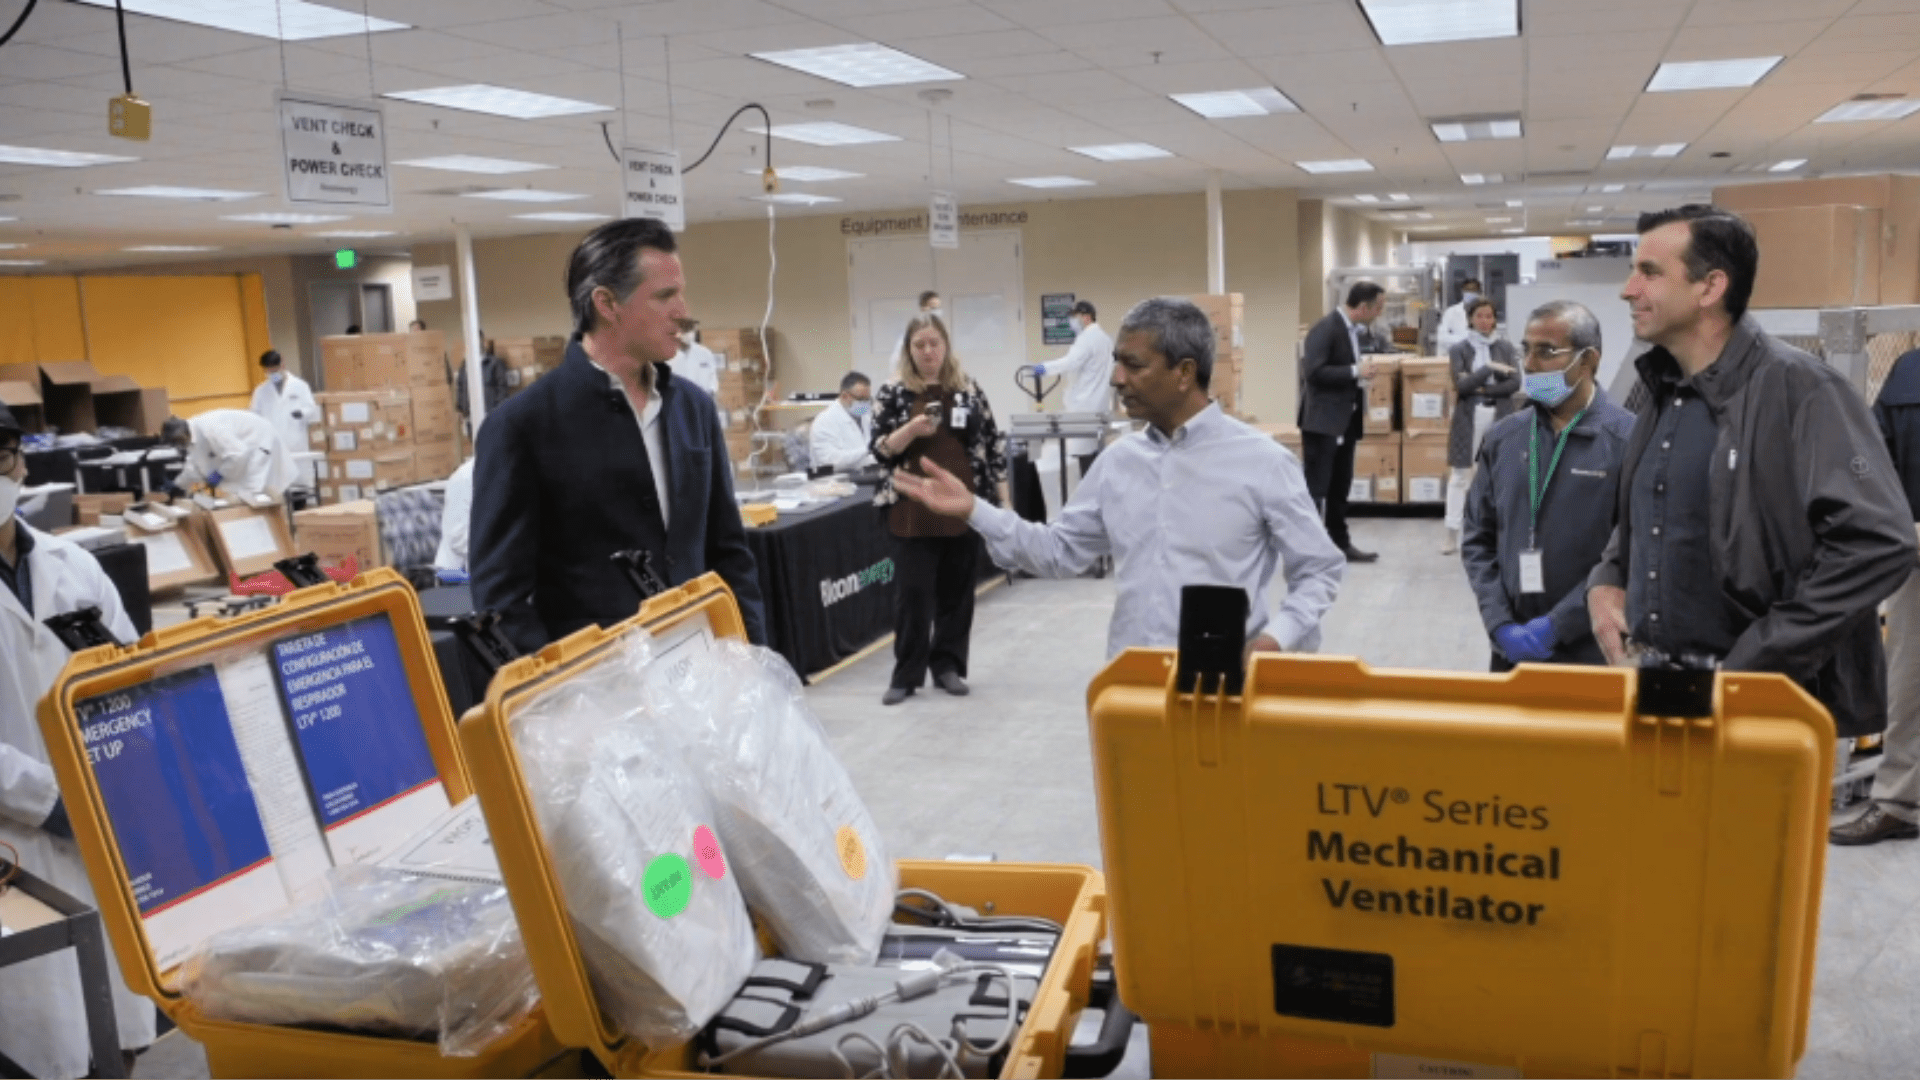 Governor Newsom, Mayor Liccardo and Bloom Energy CEO KR Sridhar visit a ventilator refurbishing site in Sunnyvale on March 28, 2020. (The Office of the Governor)